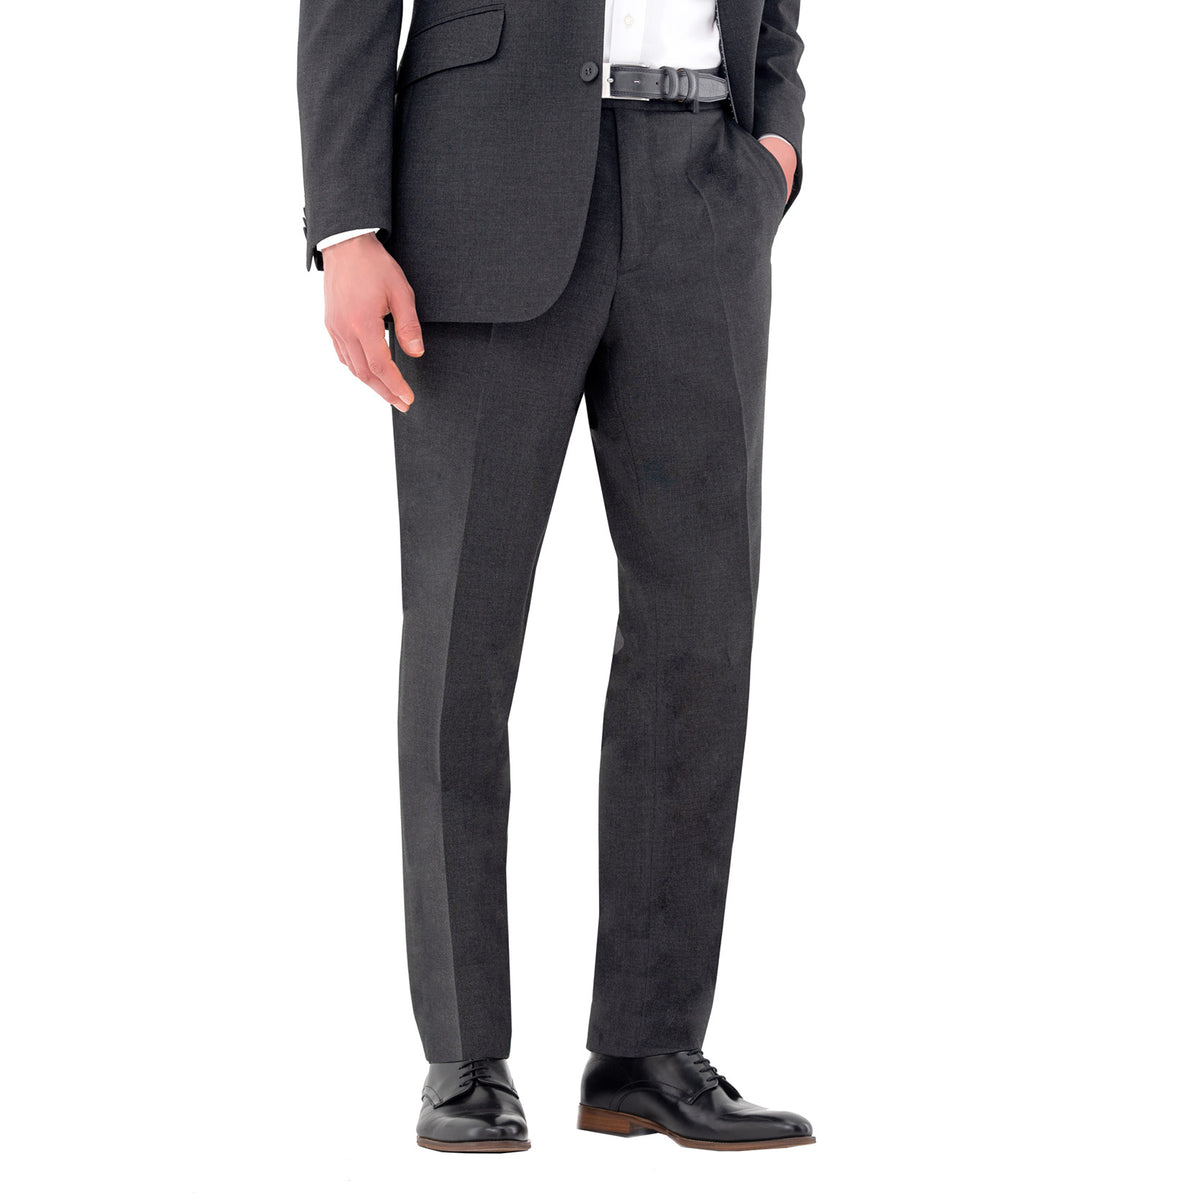 Putney Mens Trousers Charcoal